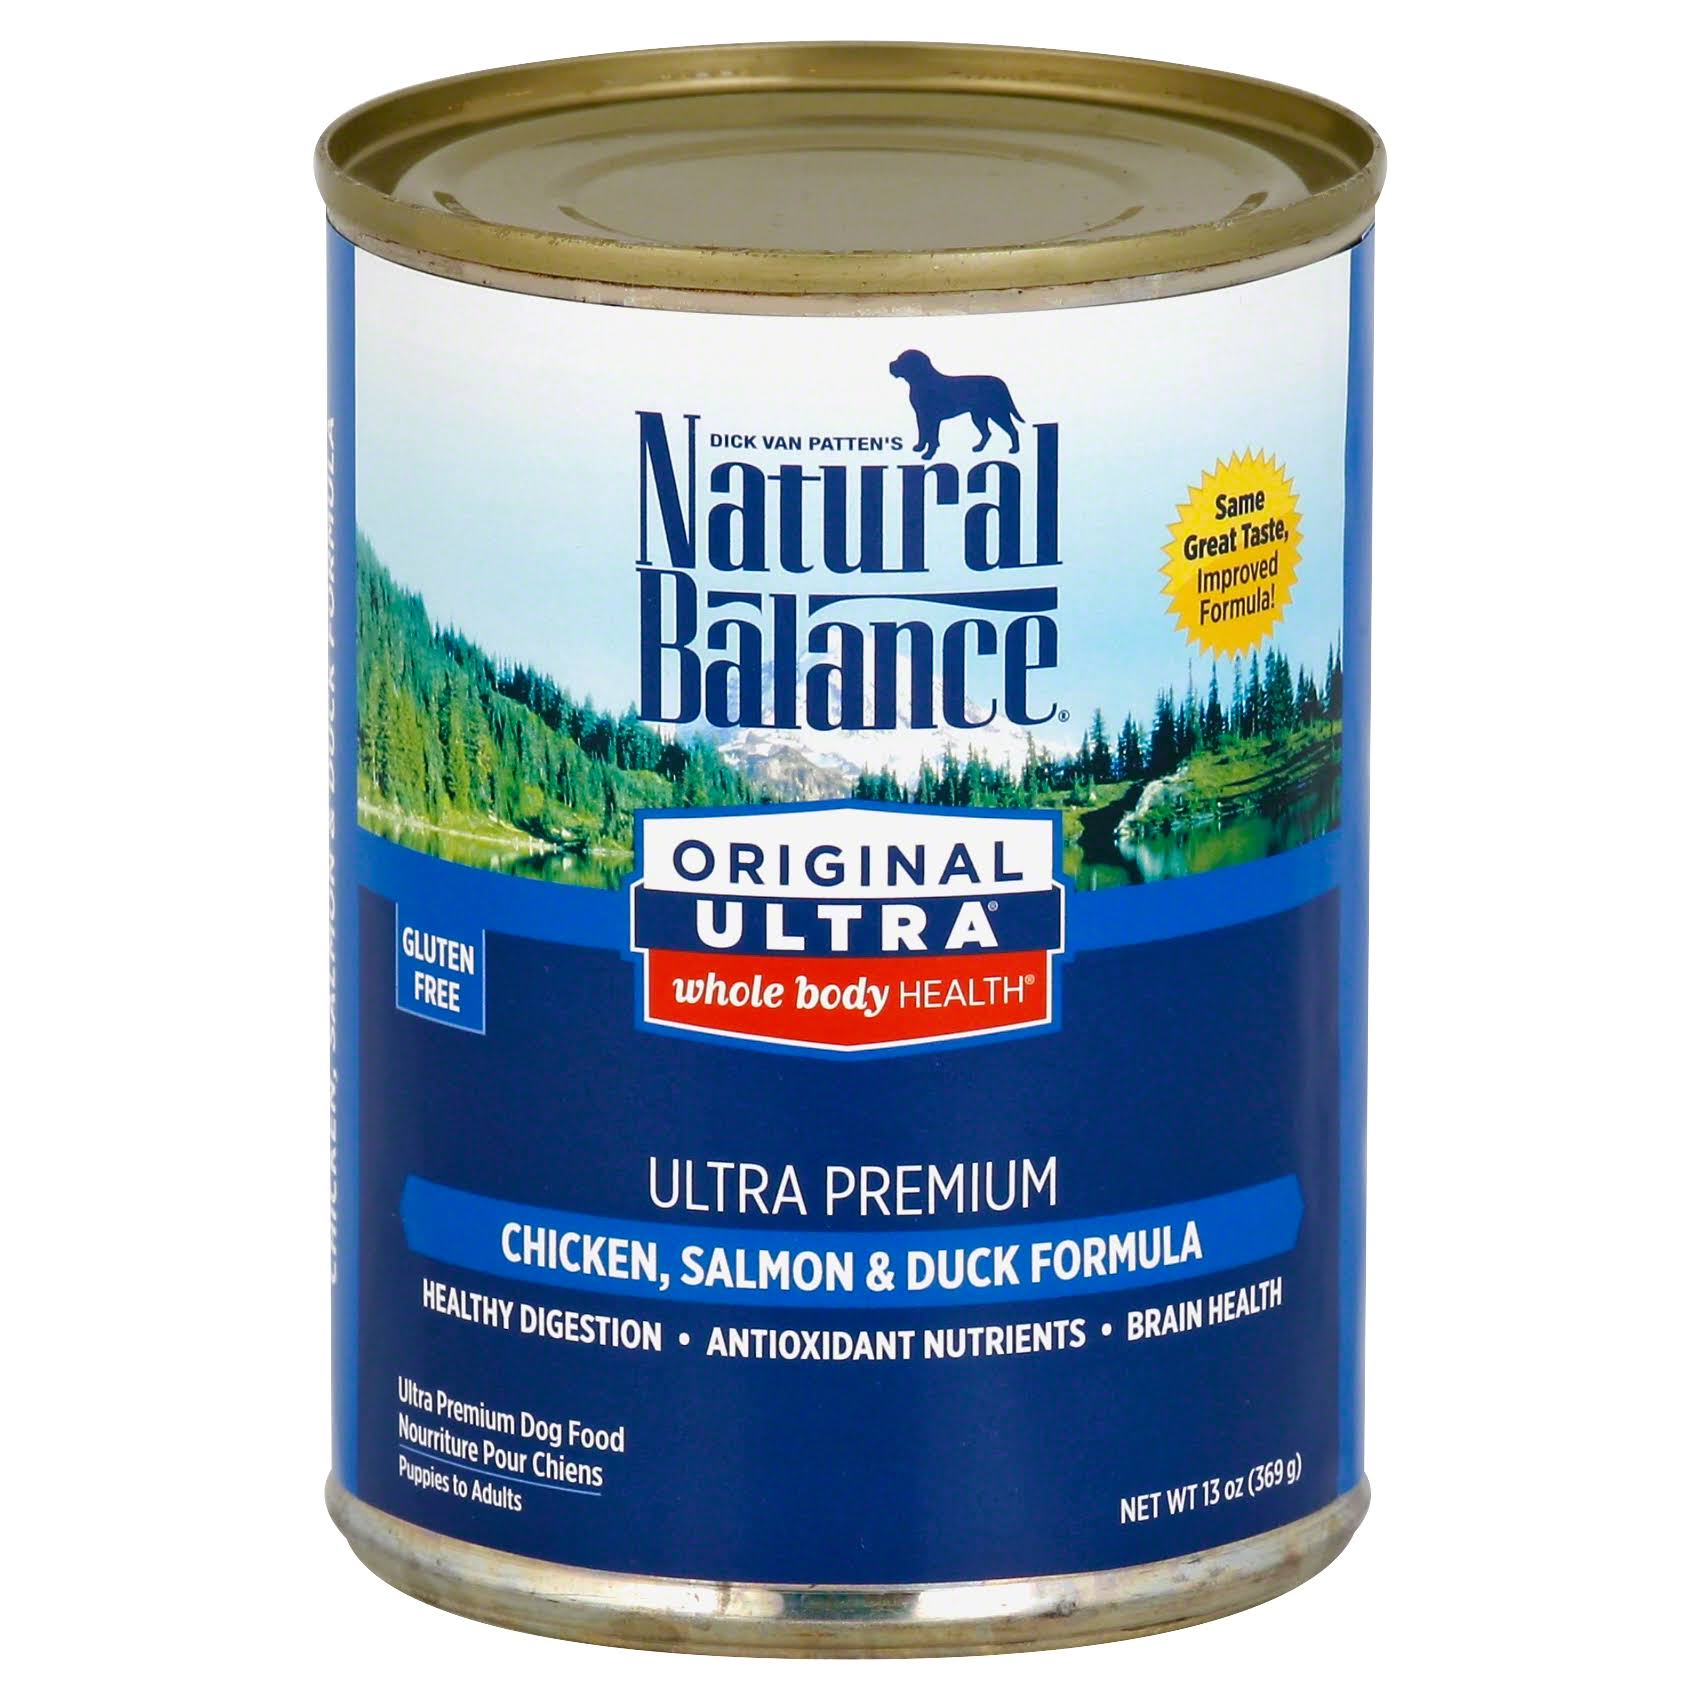 Natural Balance Original Ultra Dog Food - 369g